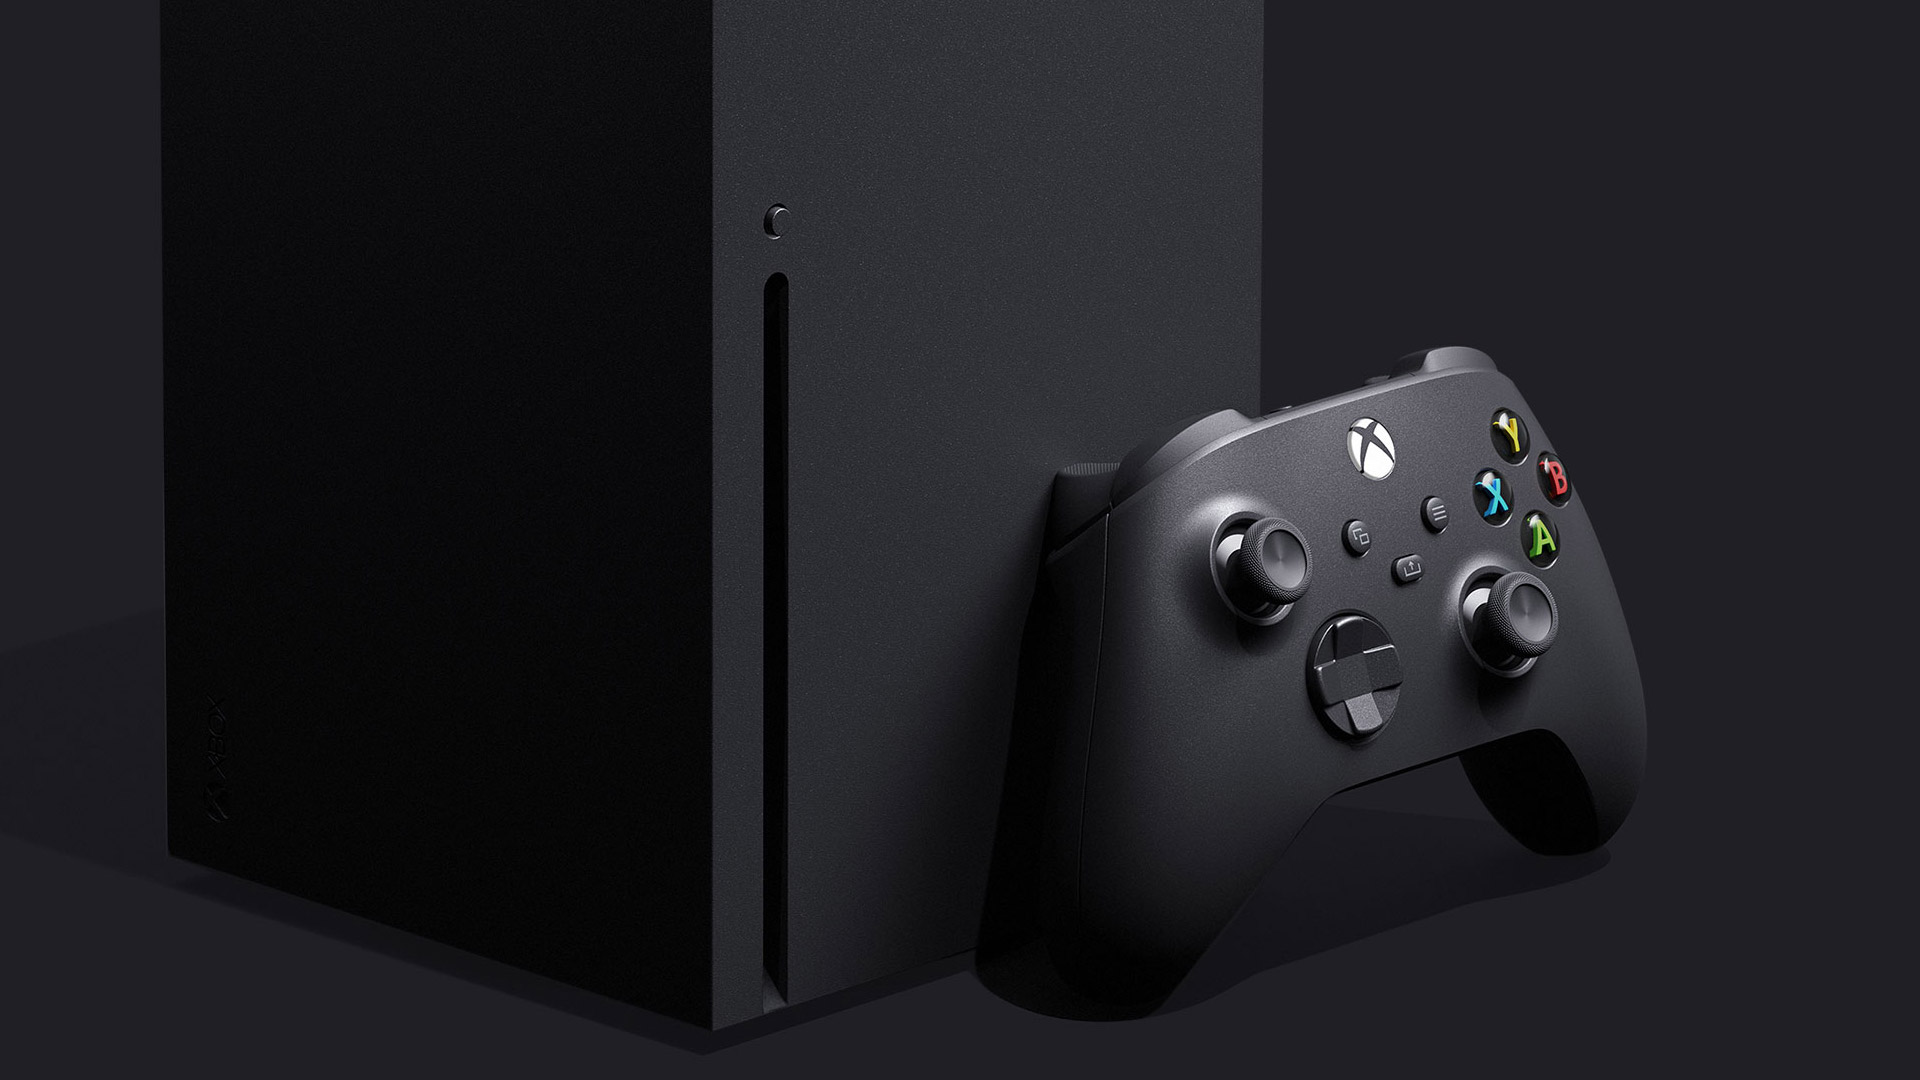 This is probably the first look at the new Xbox Series X storefront screenshot